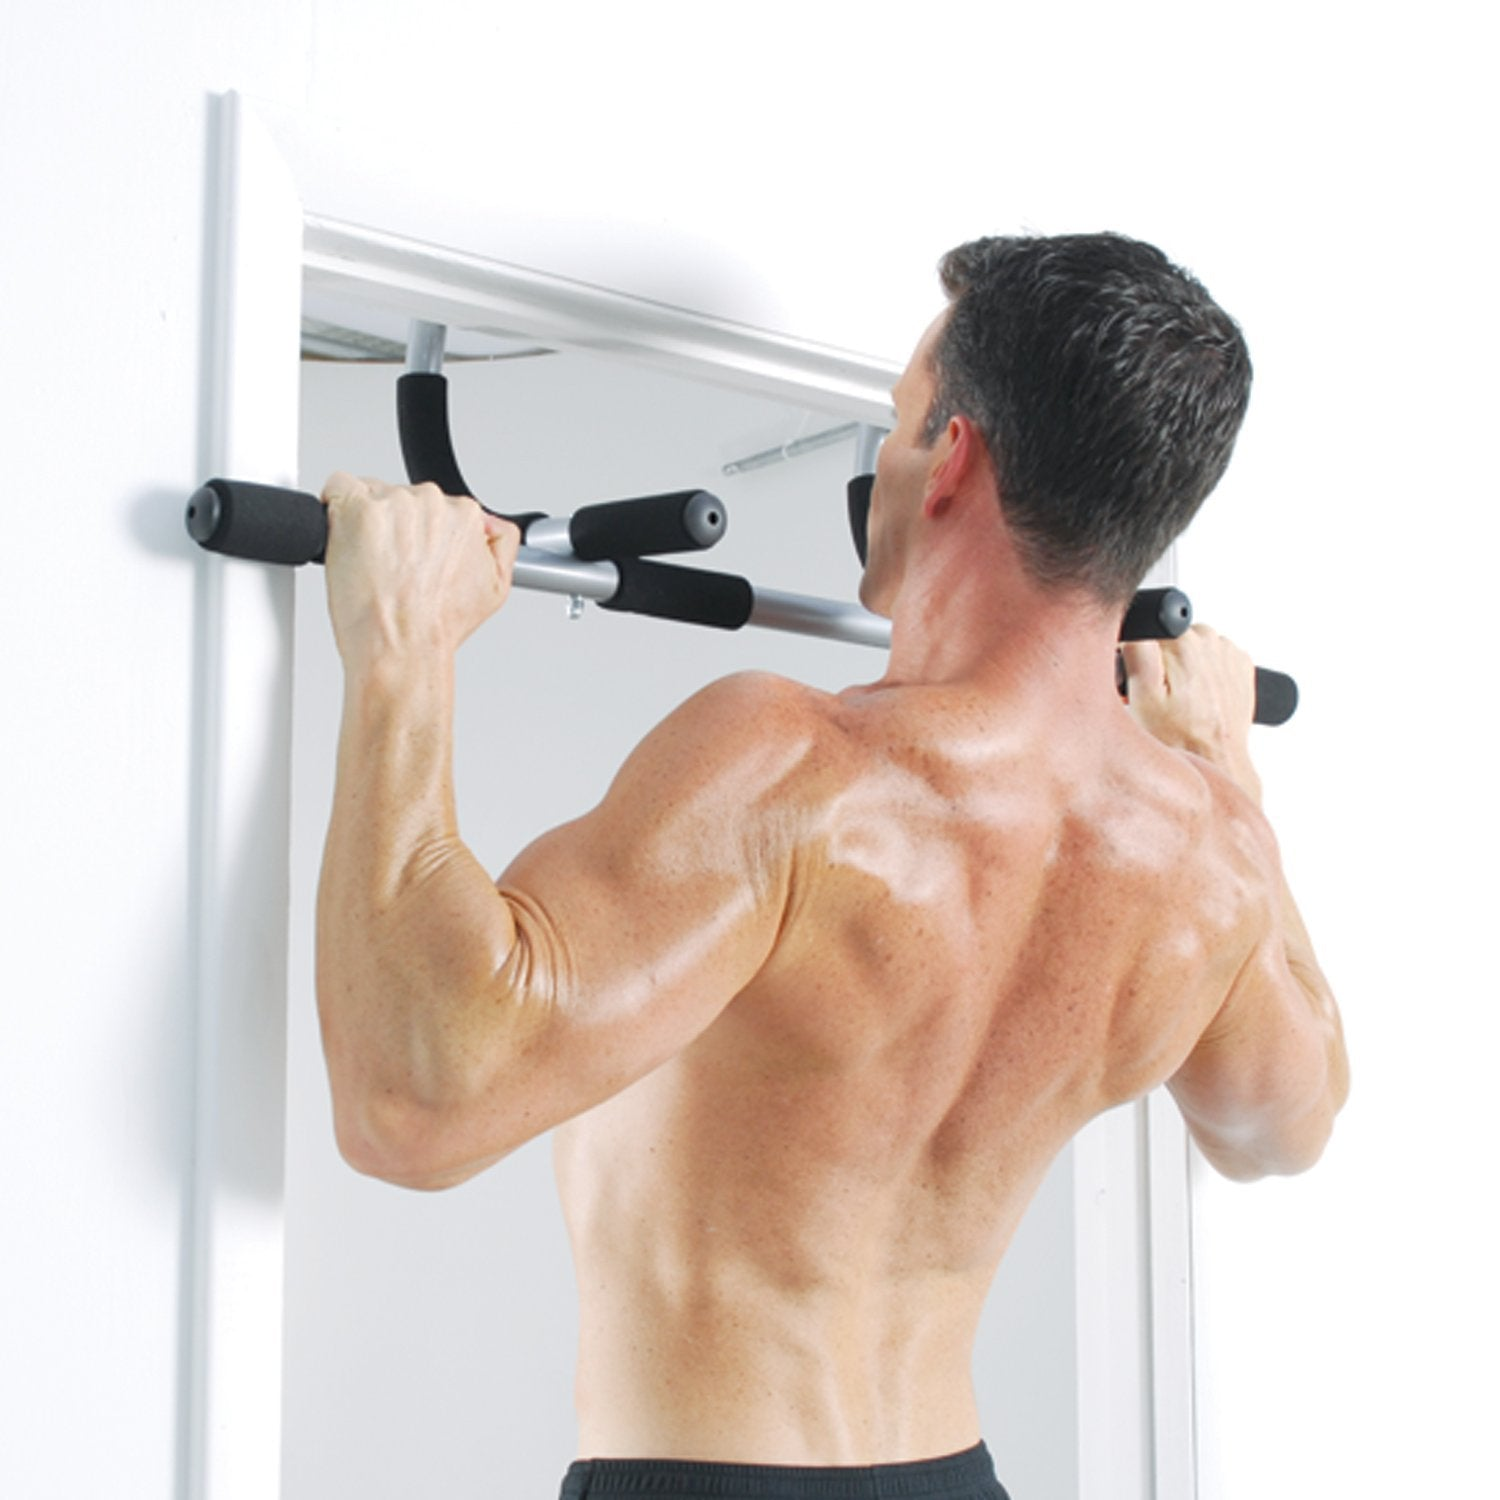 Helt nya Door Mounted Pull Up Bar - For Doorway Chin Ups at Home - Urban LG-93